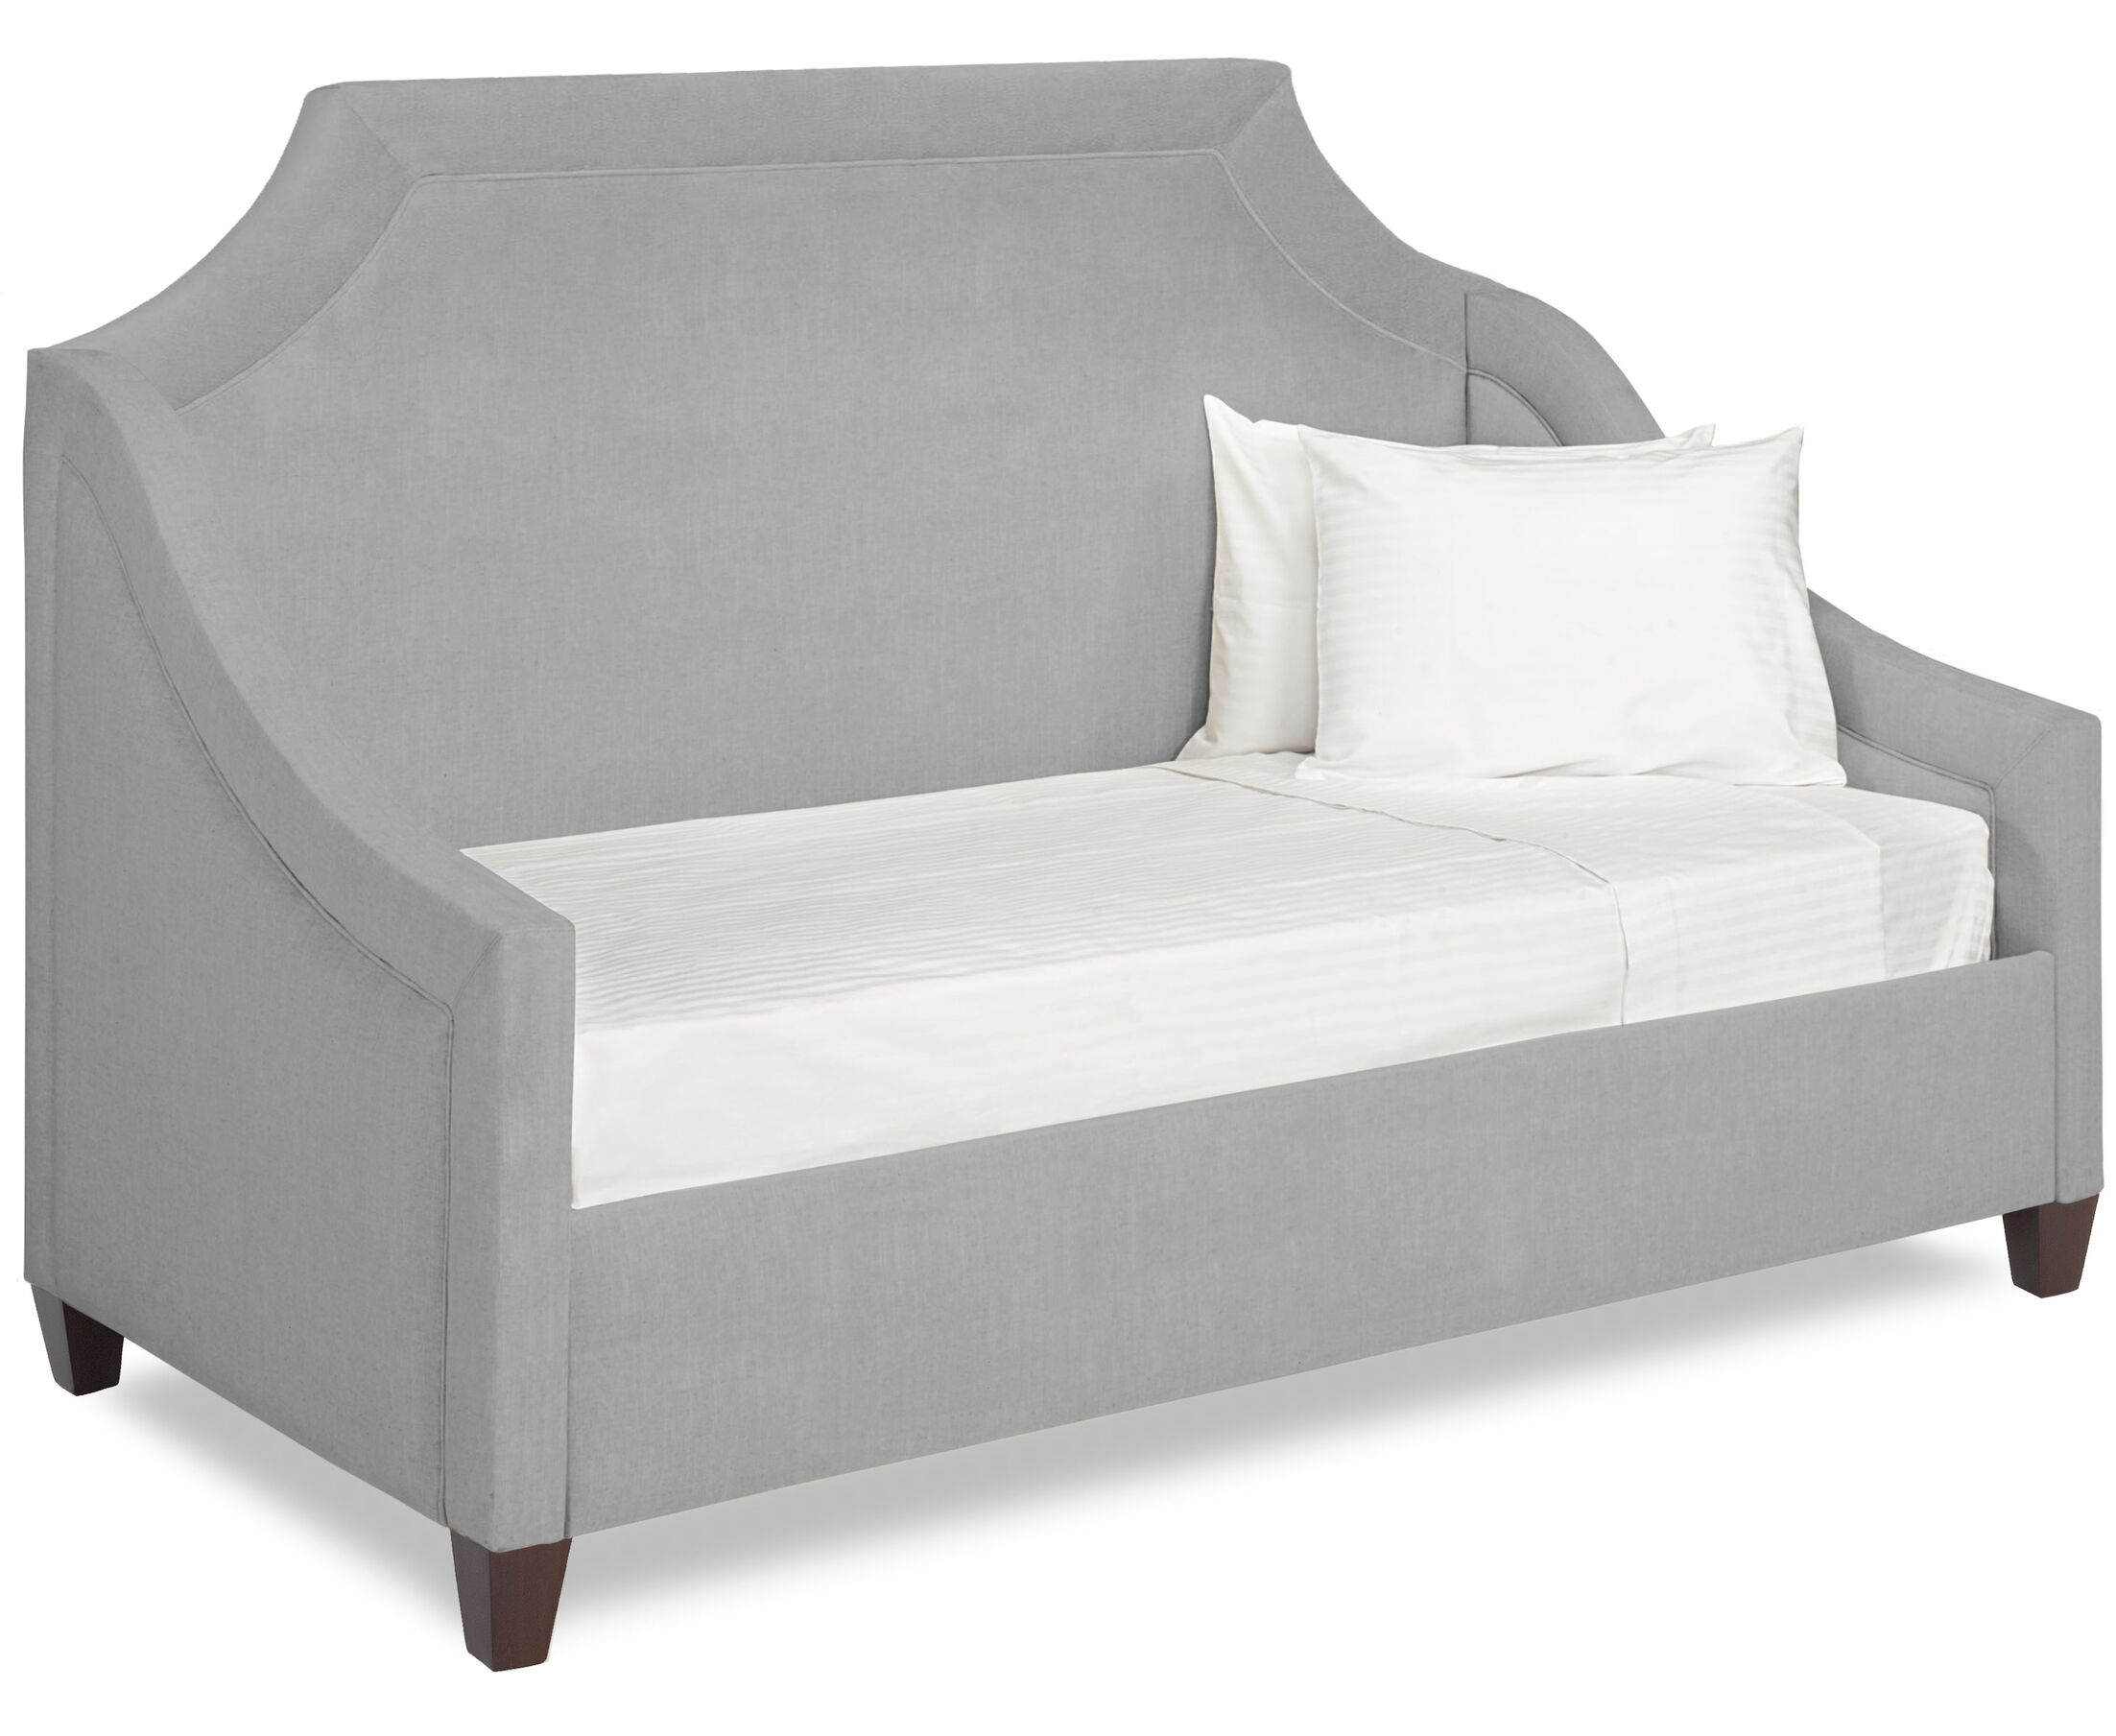 Dreamtime Daybed with Mattress Color: Pewter, Size: Twin XL